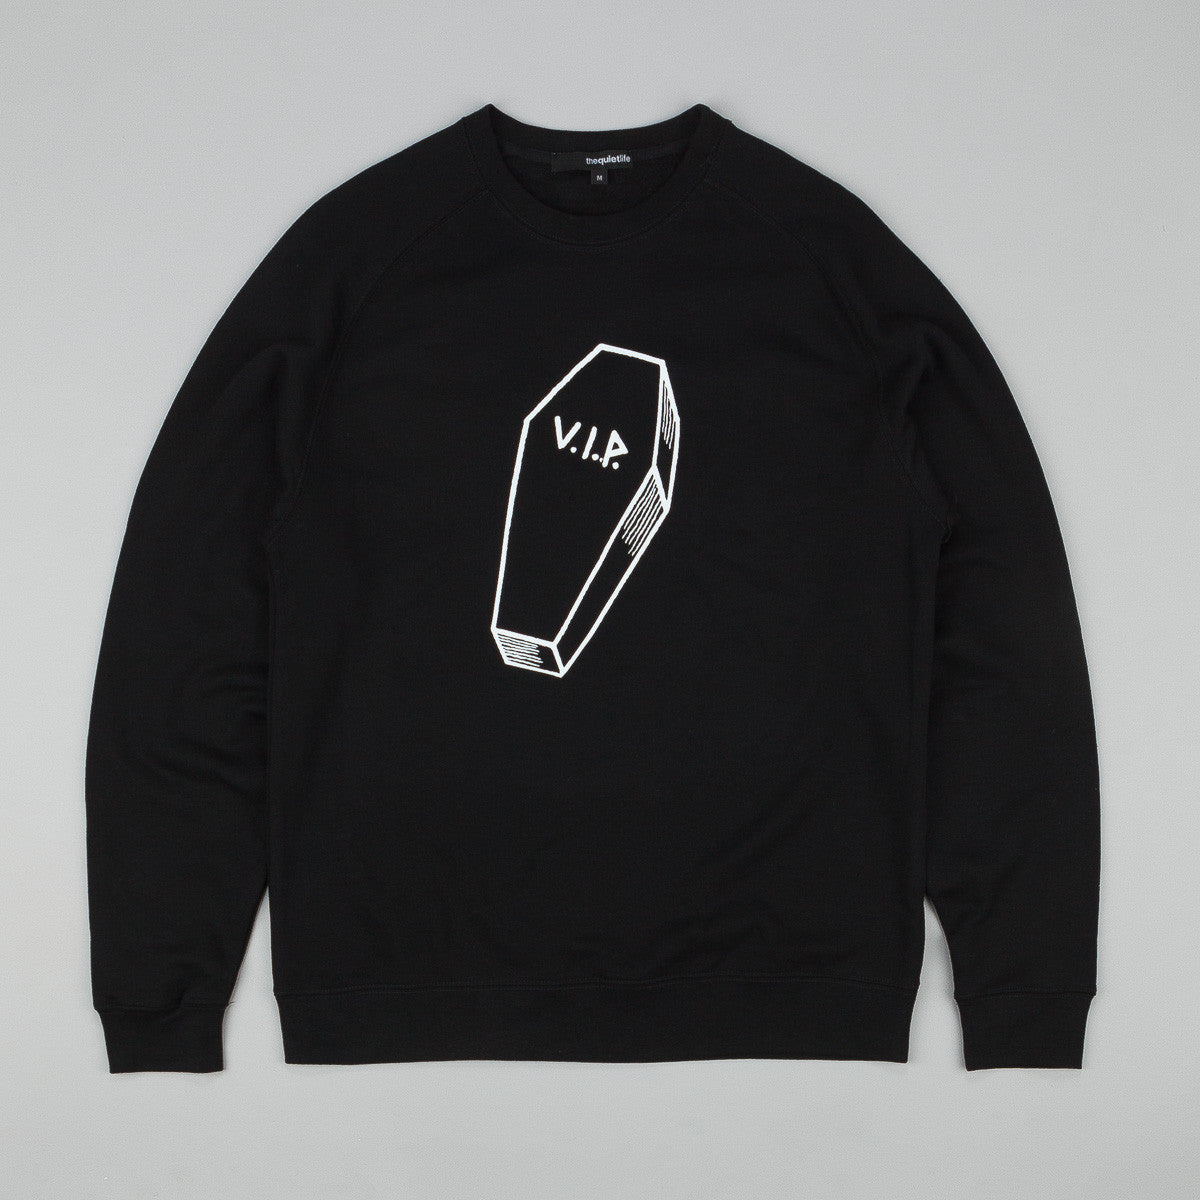 The Quiet Life VIP Printed Sweatshirt